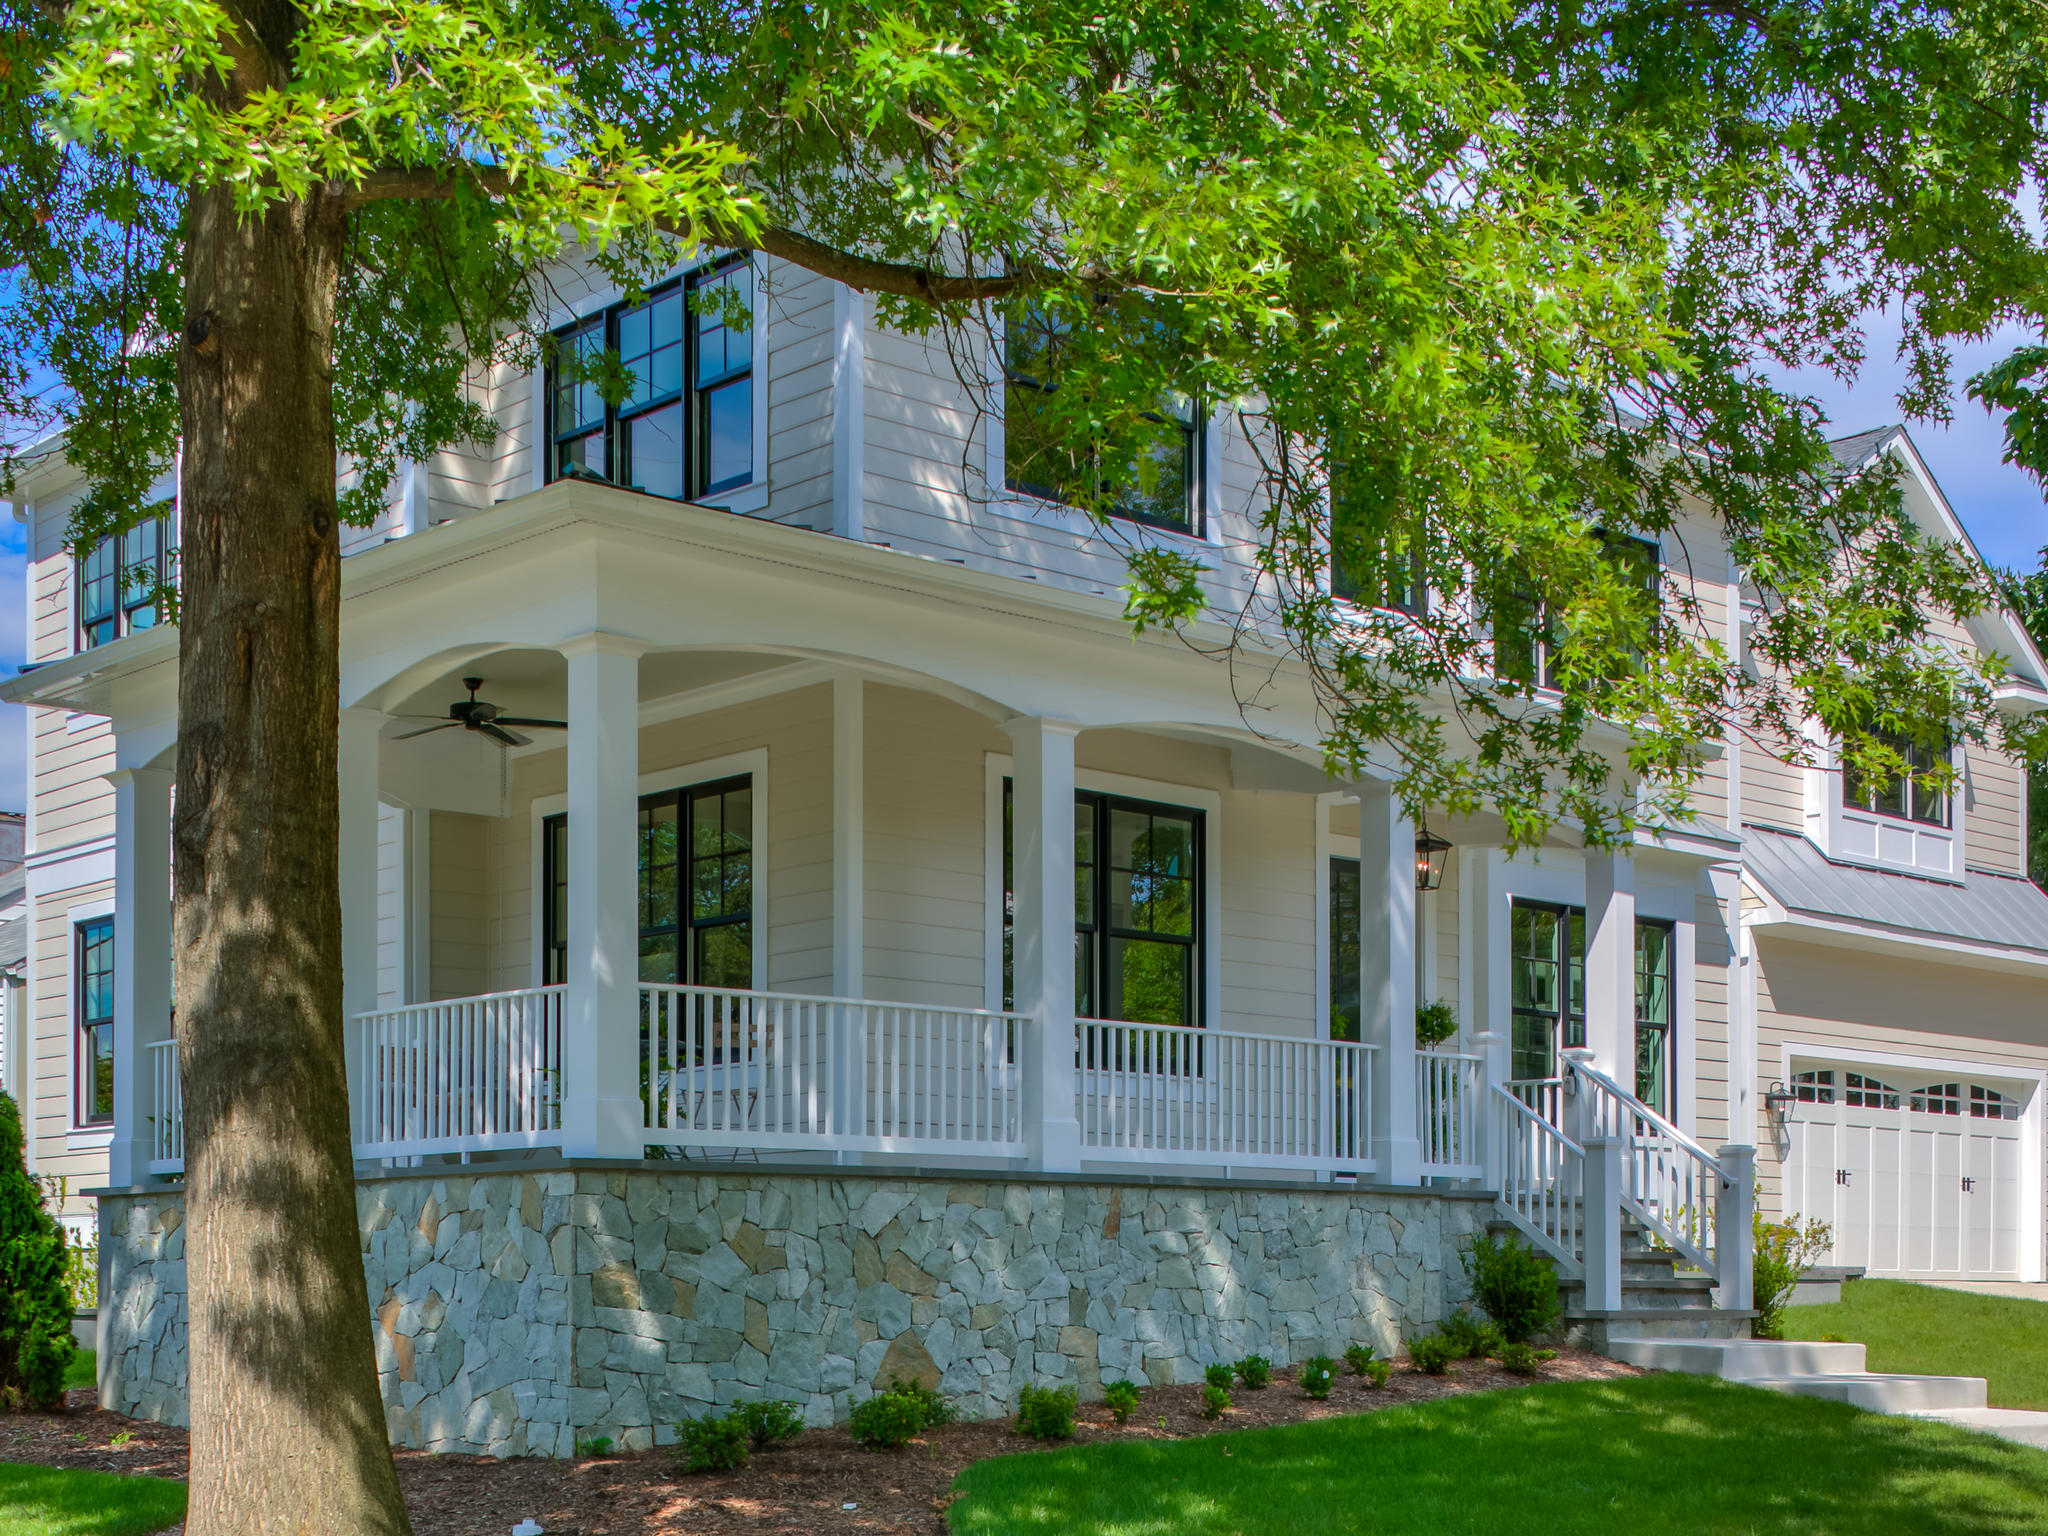 Wrap around porch in the shade of an old oak tree. Custom Home by Custom Builder, North Arlington, VA 22207